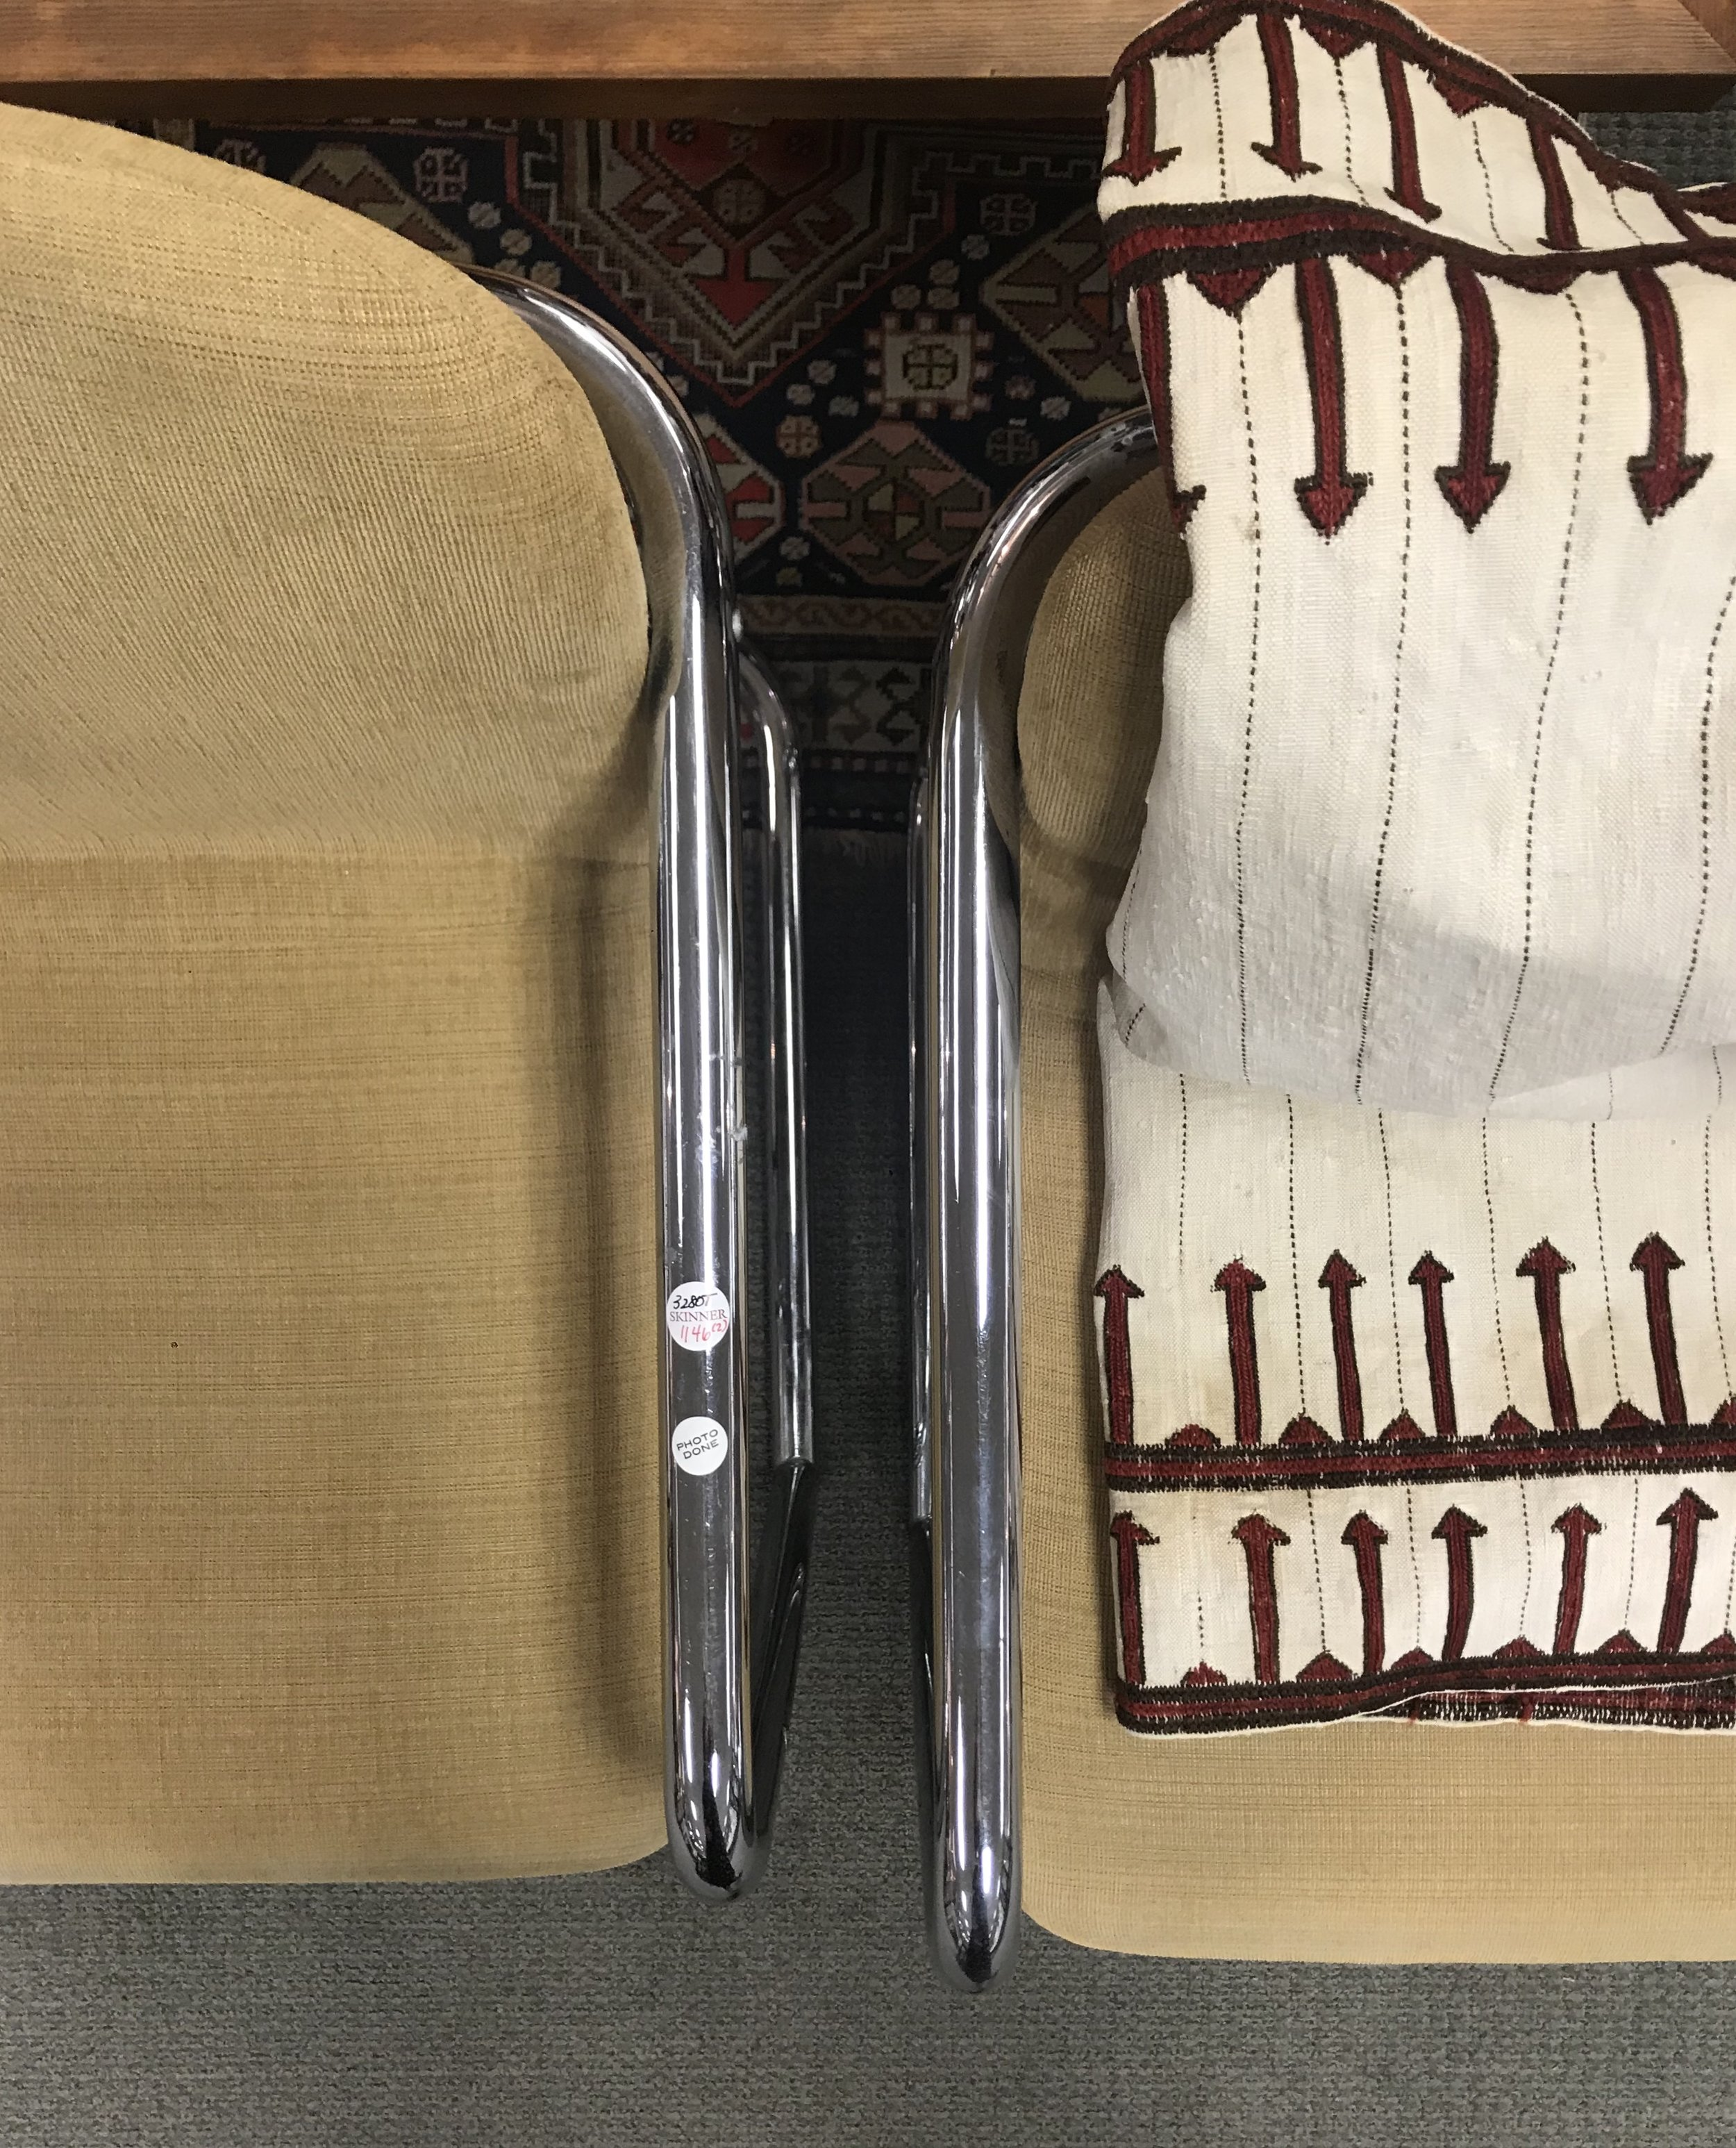 Modern Bent Steel Tube Armchairs and resting Antique Embroidered Textile from Iran.